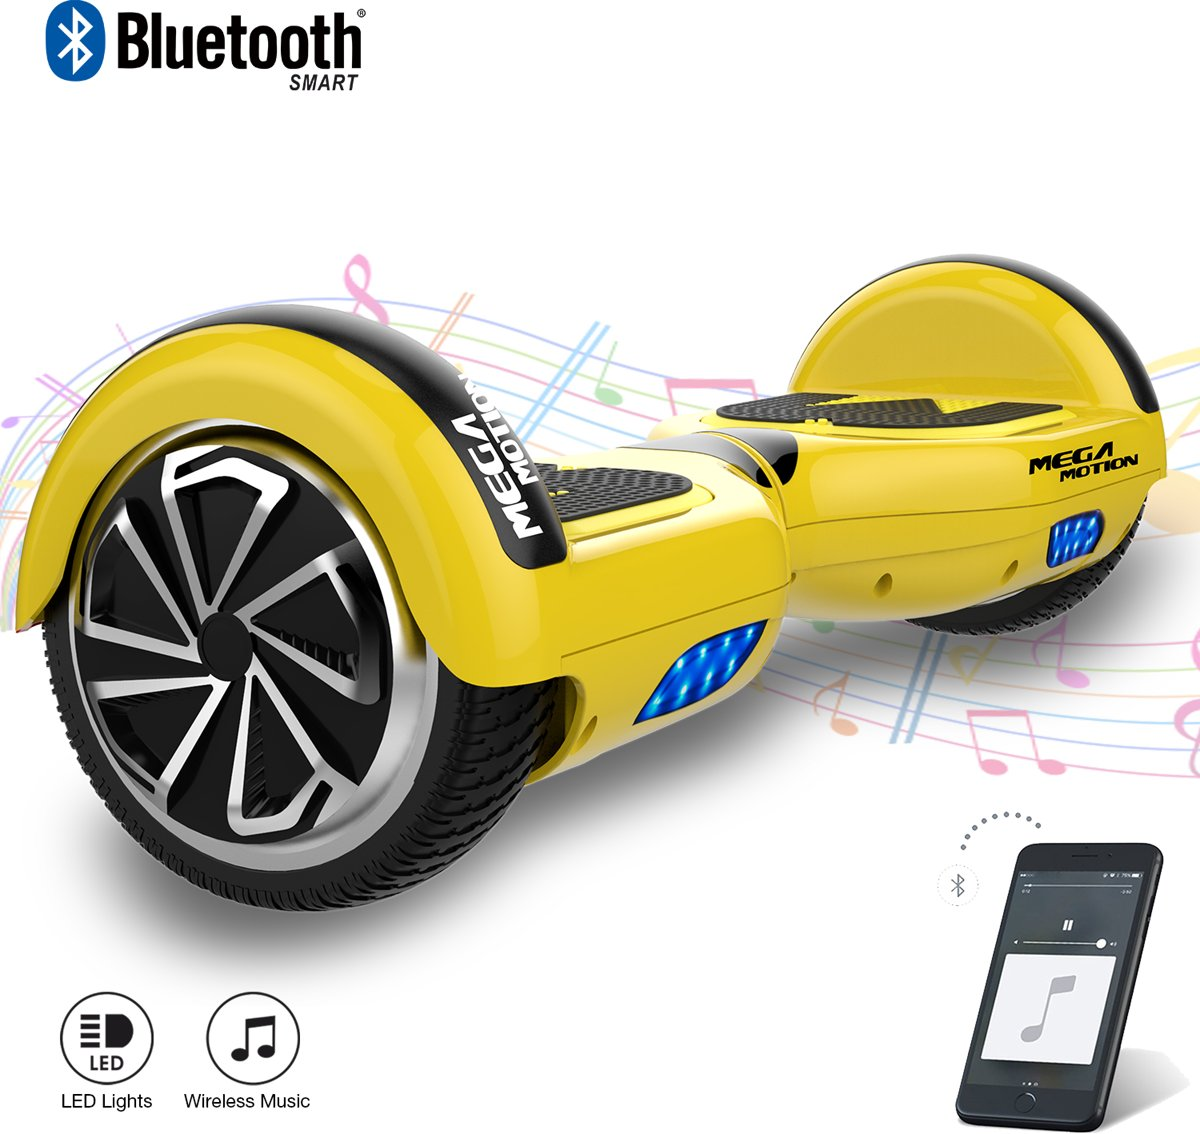 MEGA MOTION Self Balancing Smart Hoverboard Balance Scooter 6.5 inch/ V.5 Bluetooth speakers/ LED Verlichting /speciaal ontwerp - Geel